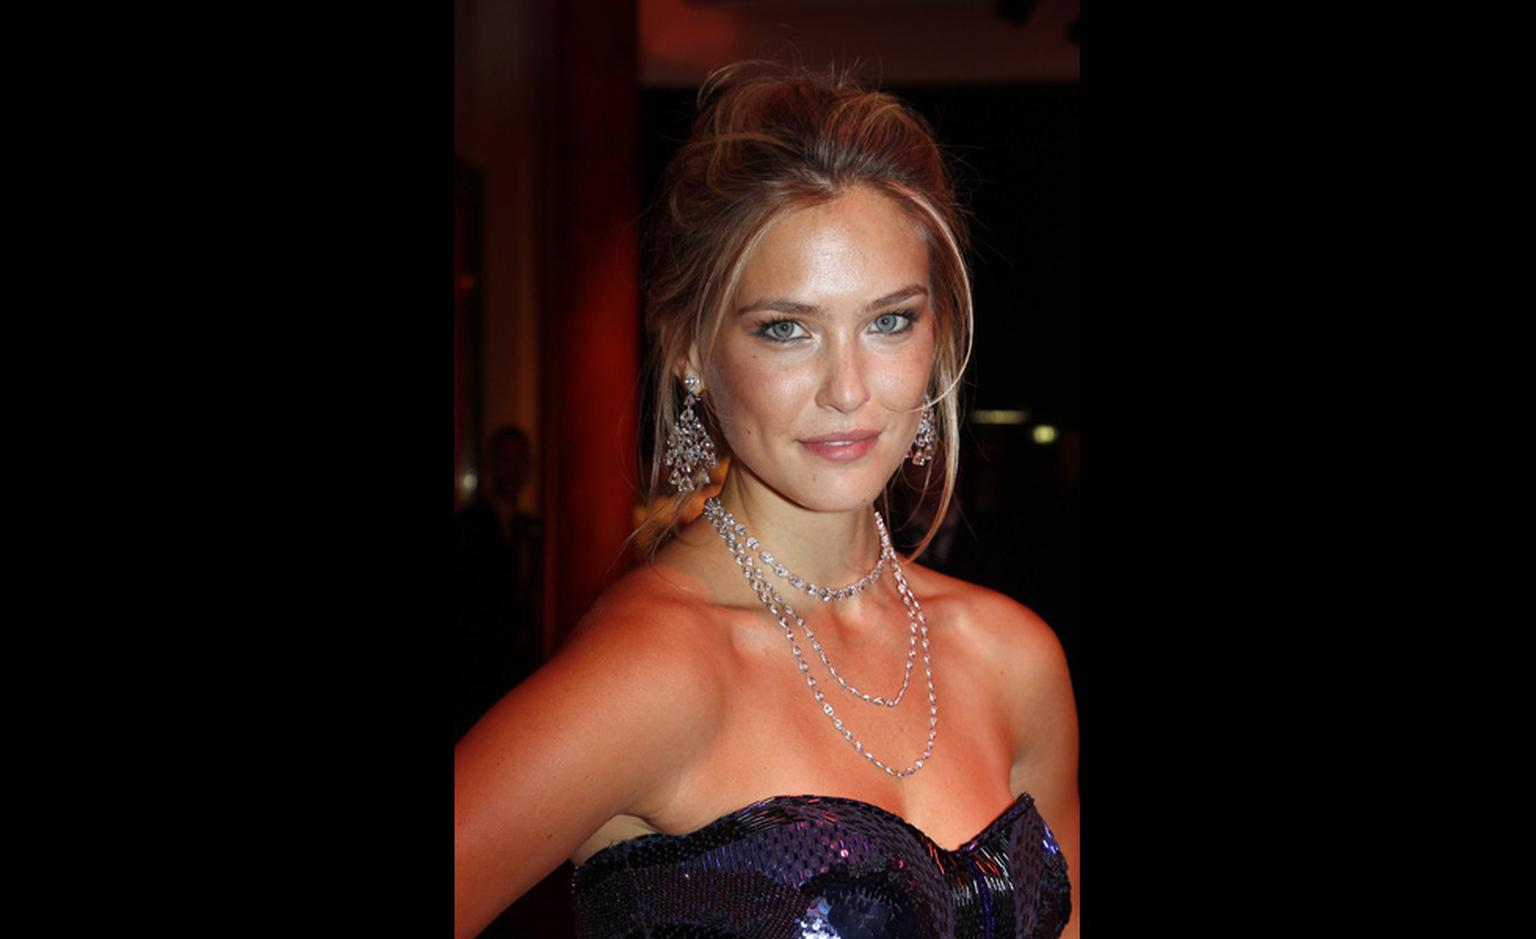 Bar Rafaeli at Chopard's Crazy Diamonds party at the Cannes Film Festival 2011 wearing Chopard jewels.